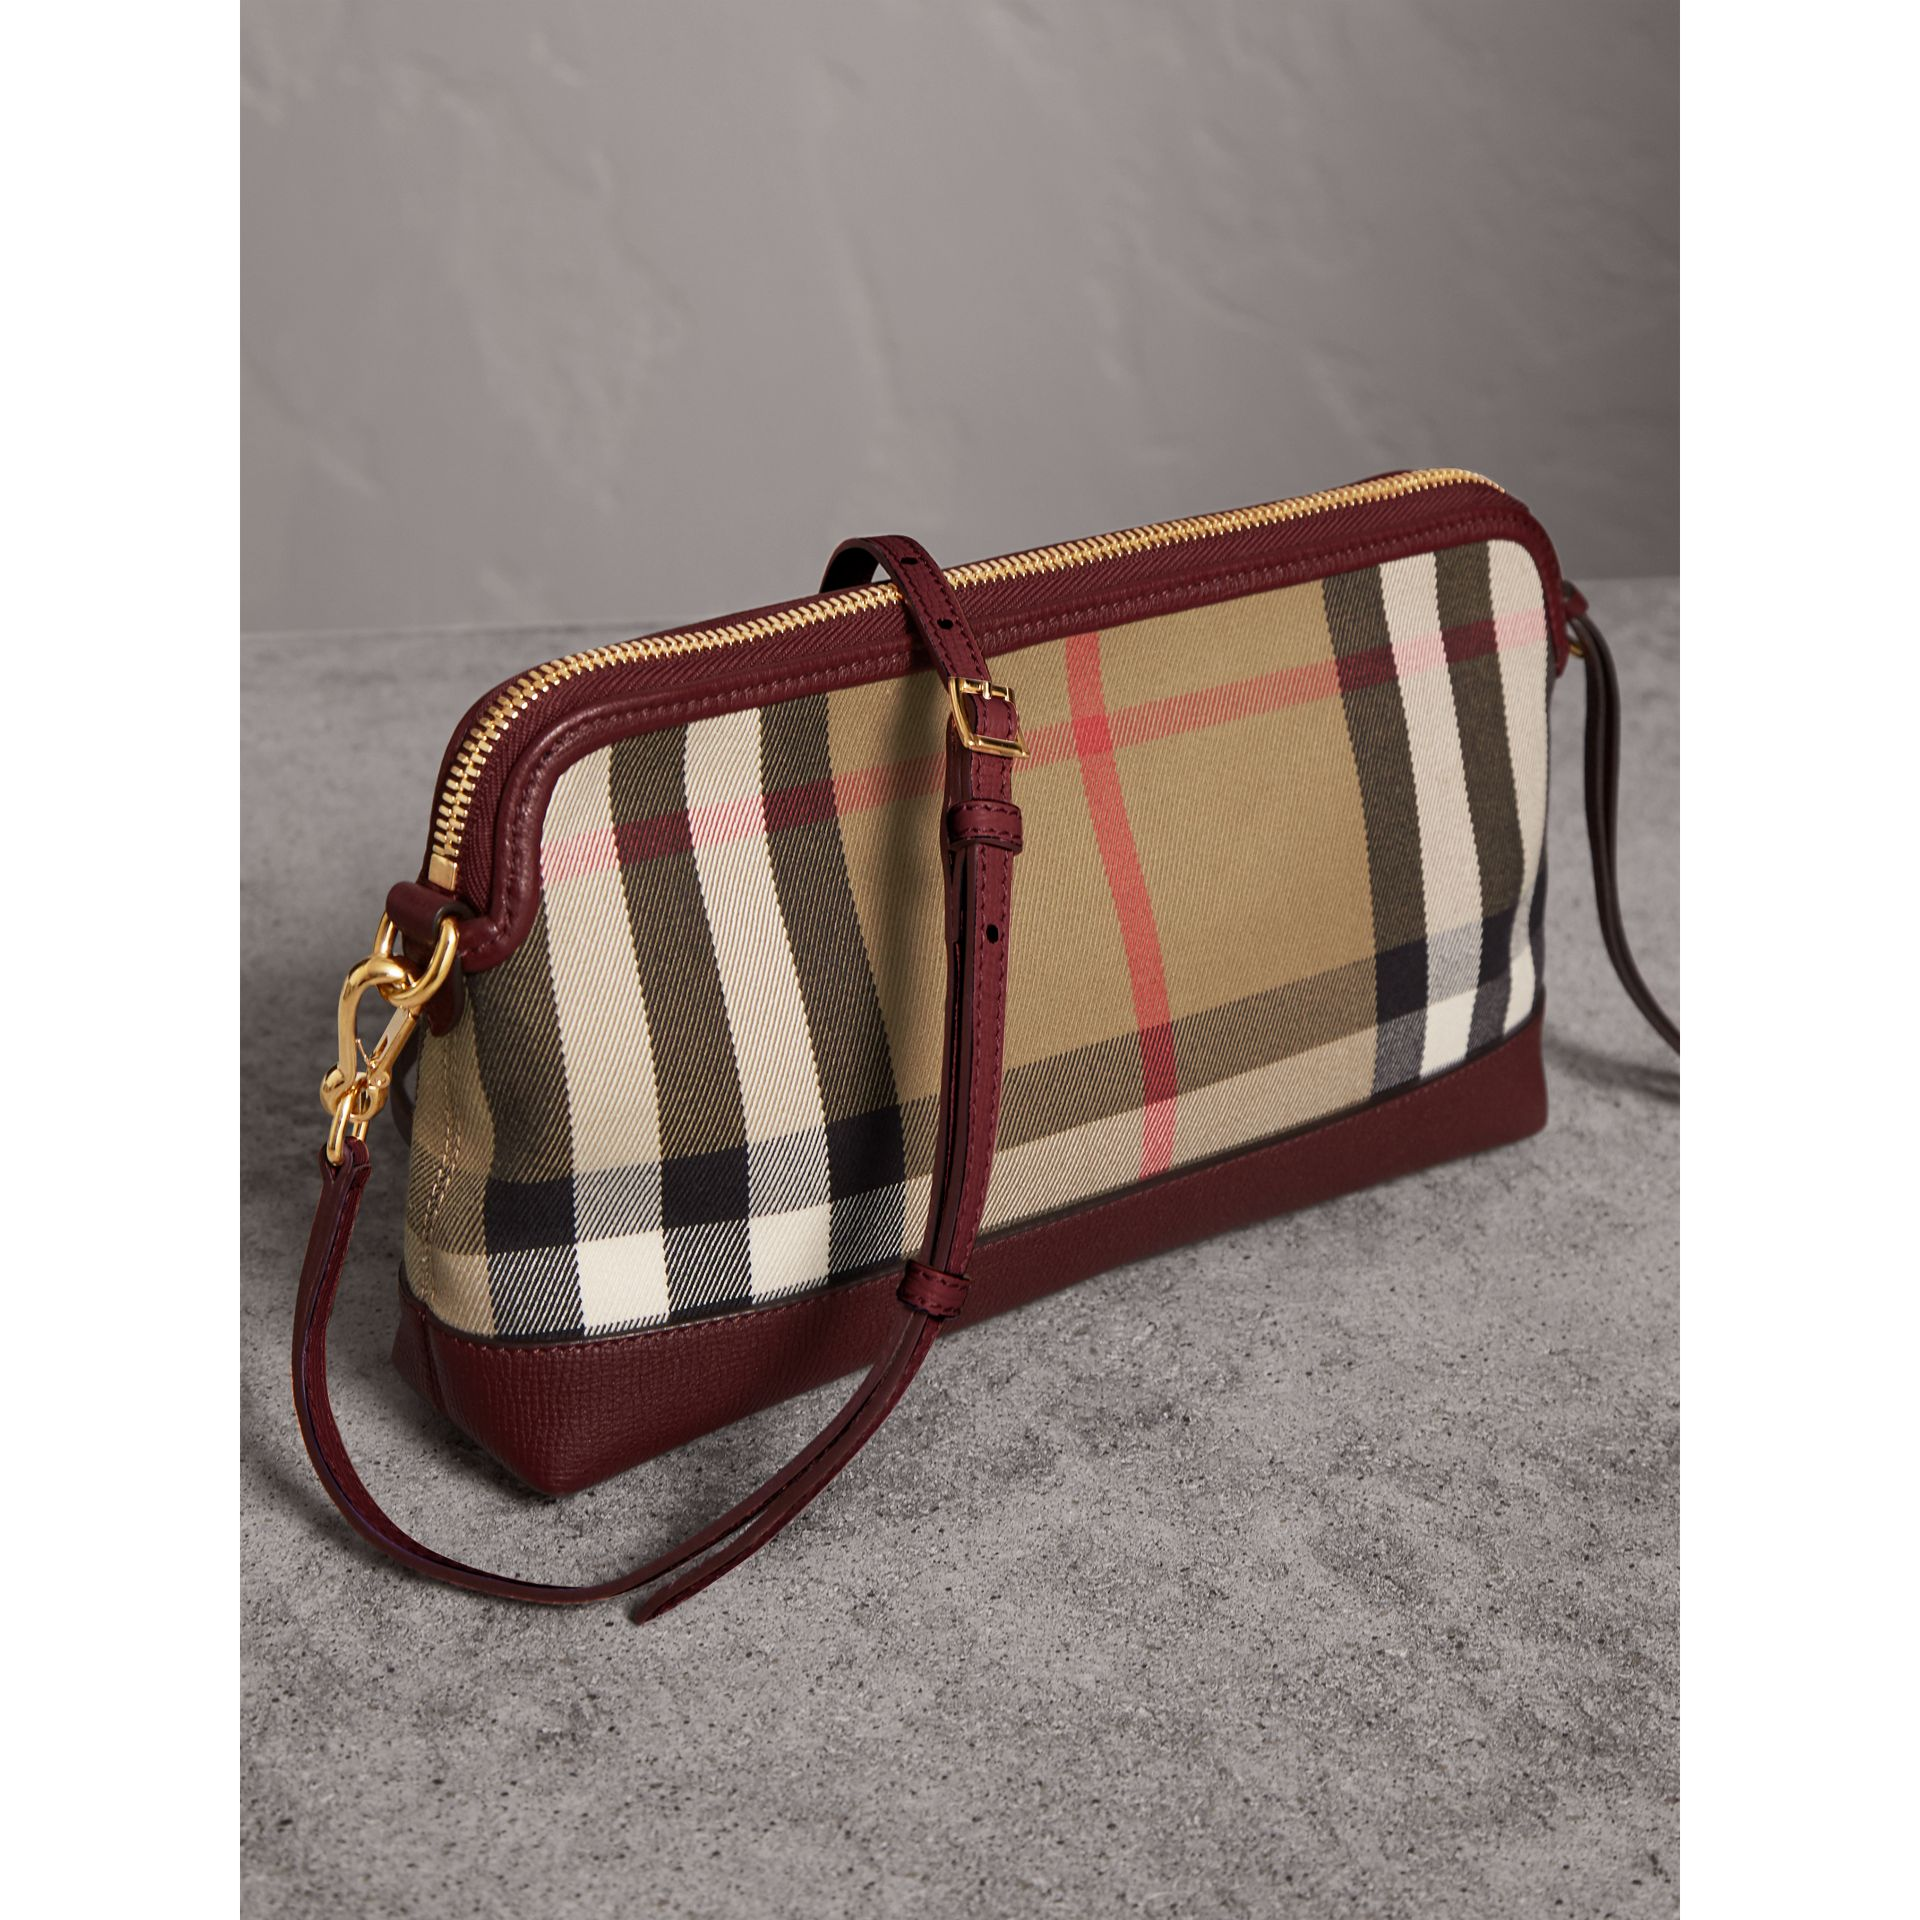 House Check and Leather Clutch Bag in Mahogany Red - Women | Burberry - gallery image 5